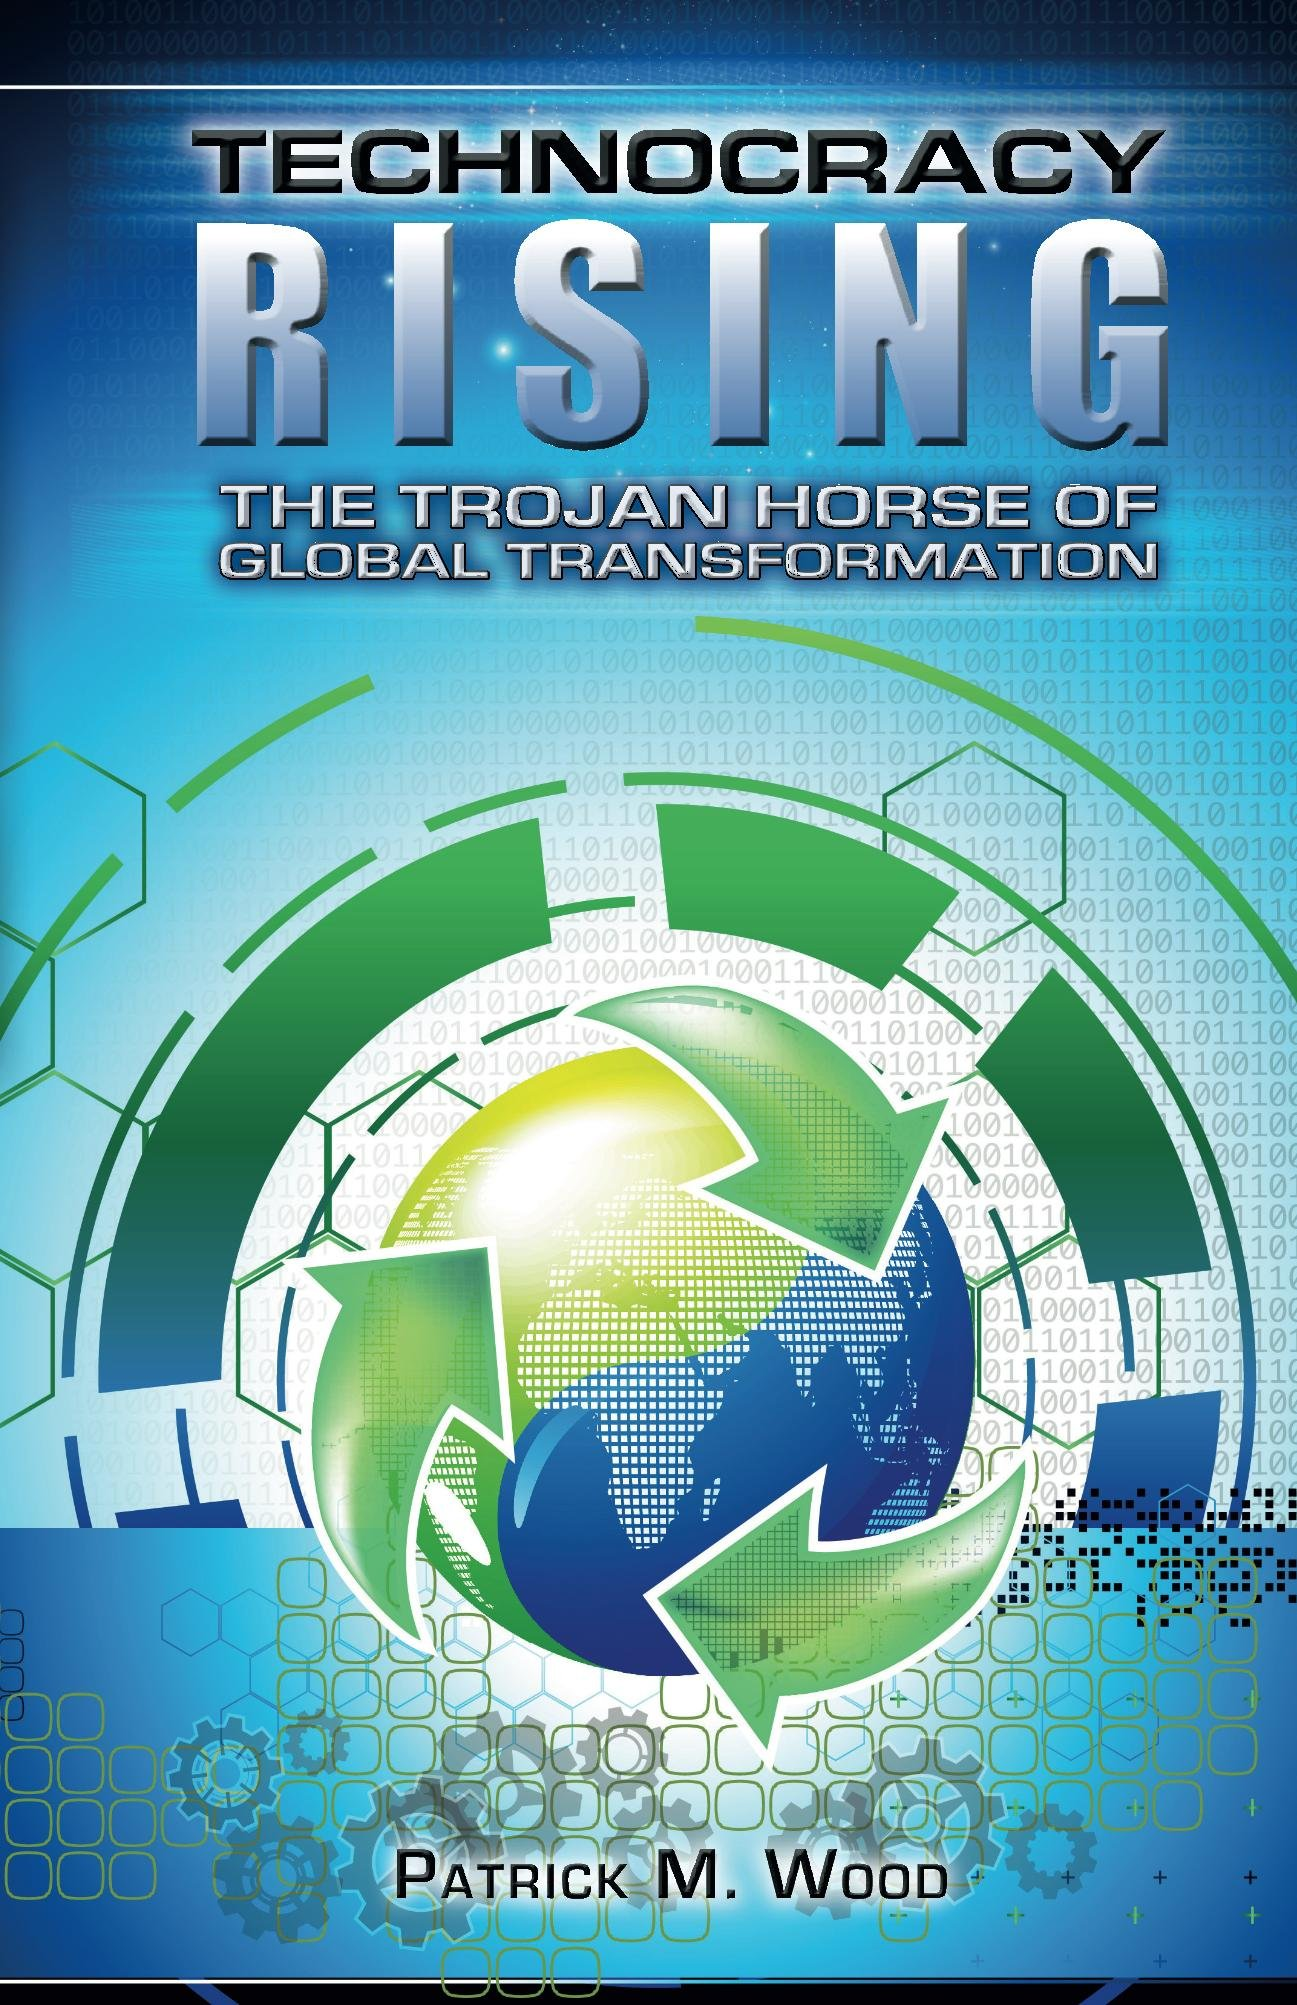 Technocracy Rising- The Trojan Horse of Global Transformation, by Patrick M. Wood